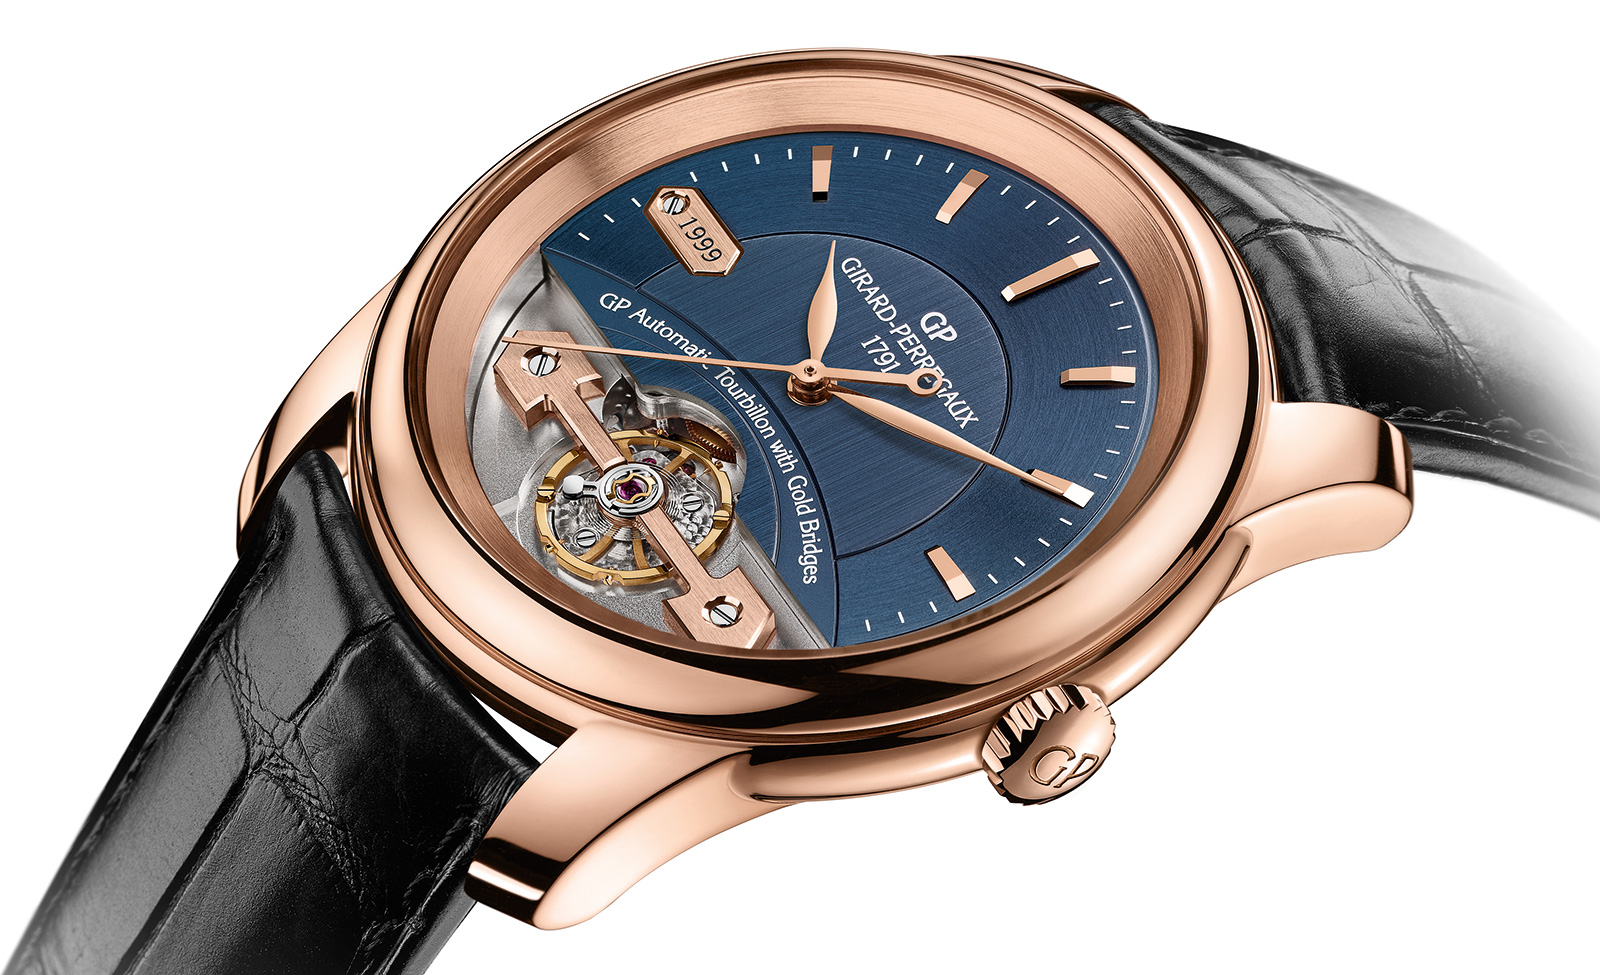 Girard perregaux introduces the place girardet with a single gold bridge and no tourbillon for Girard perregaux